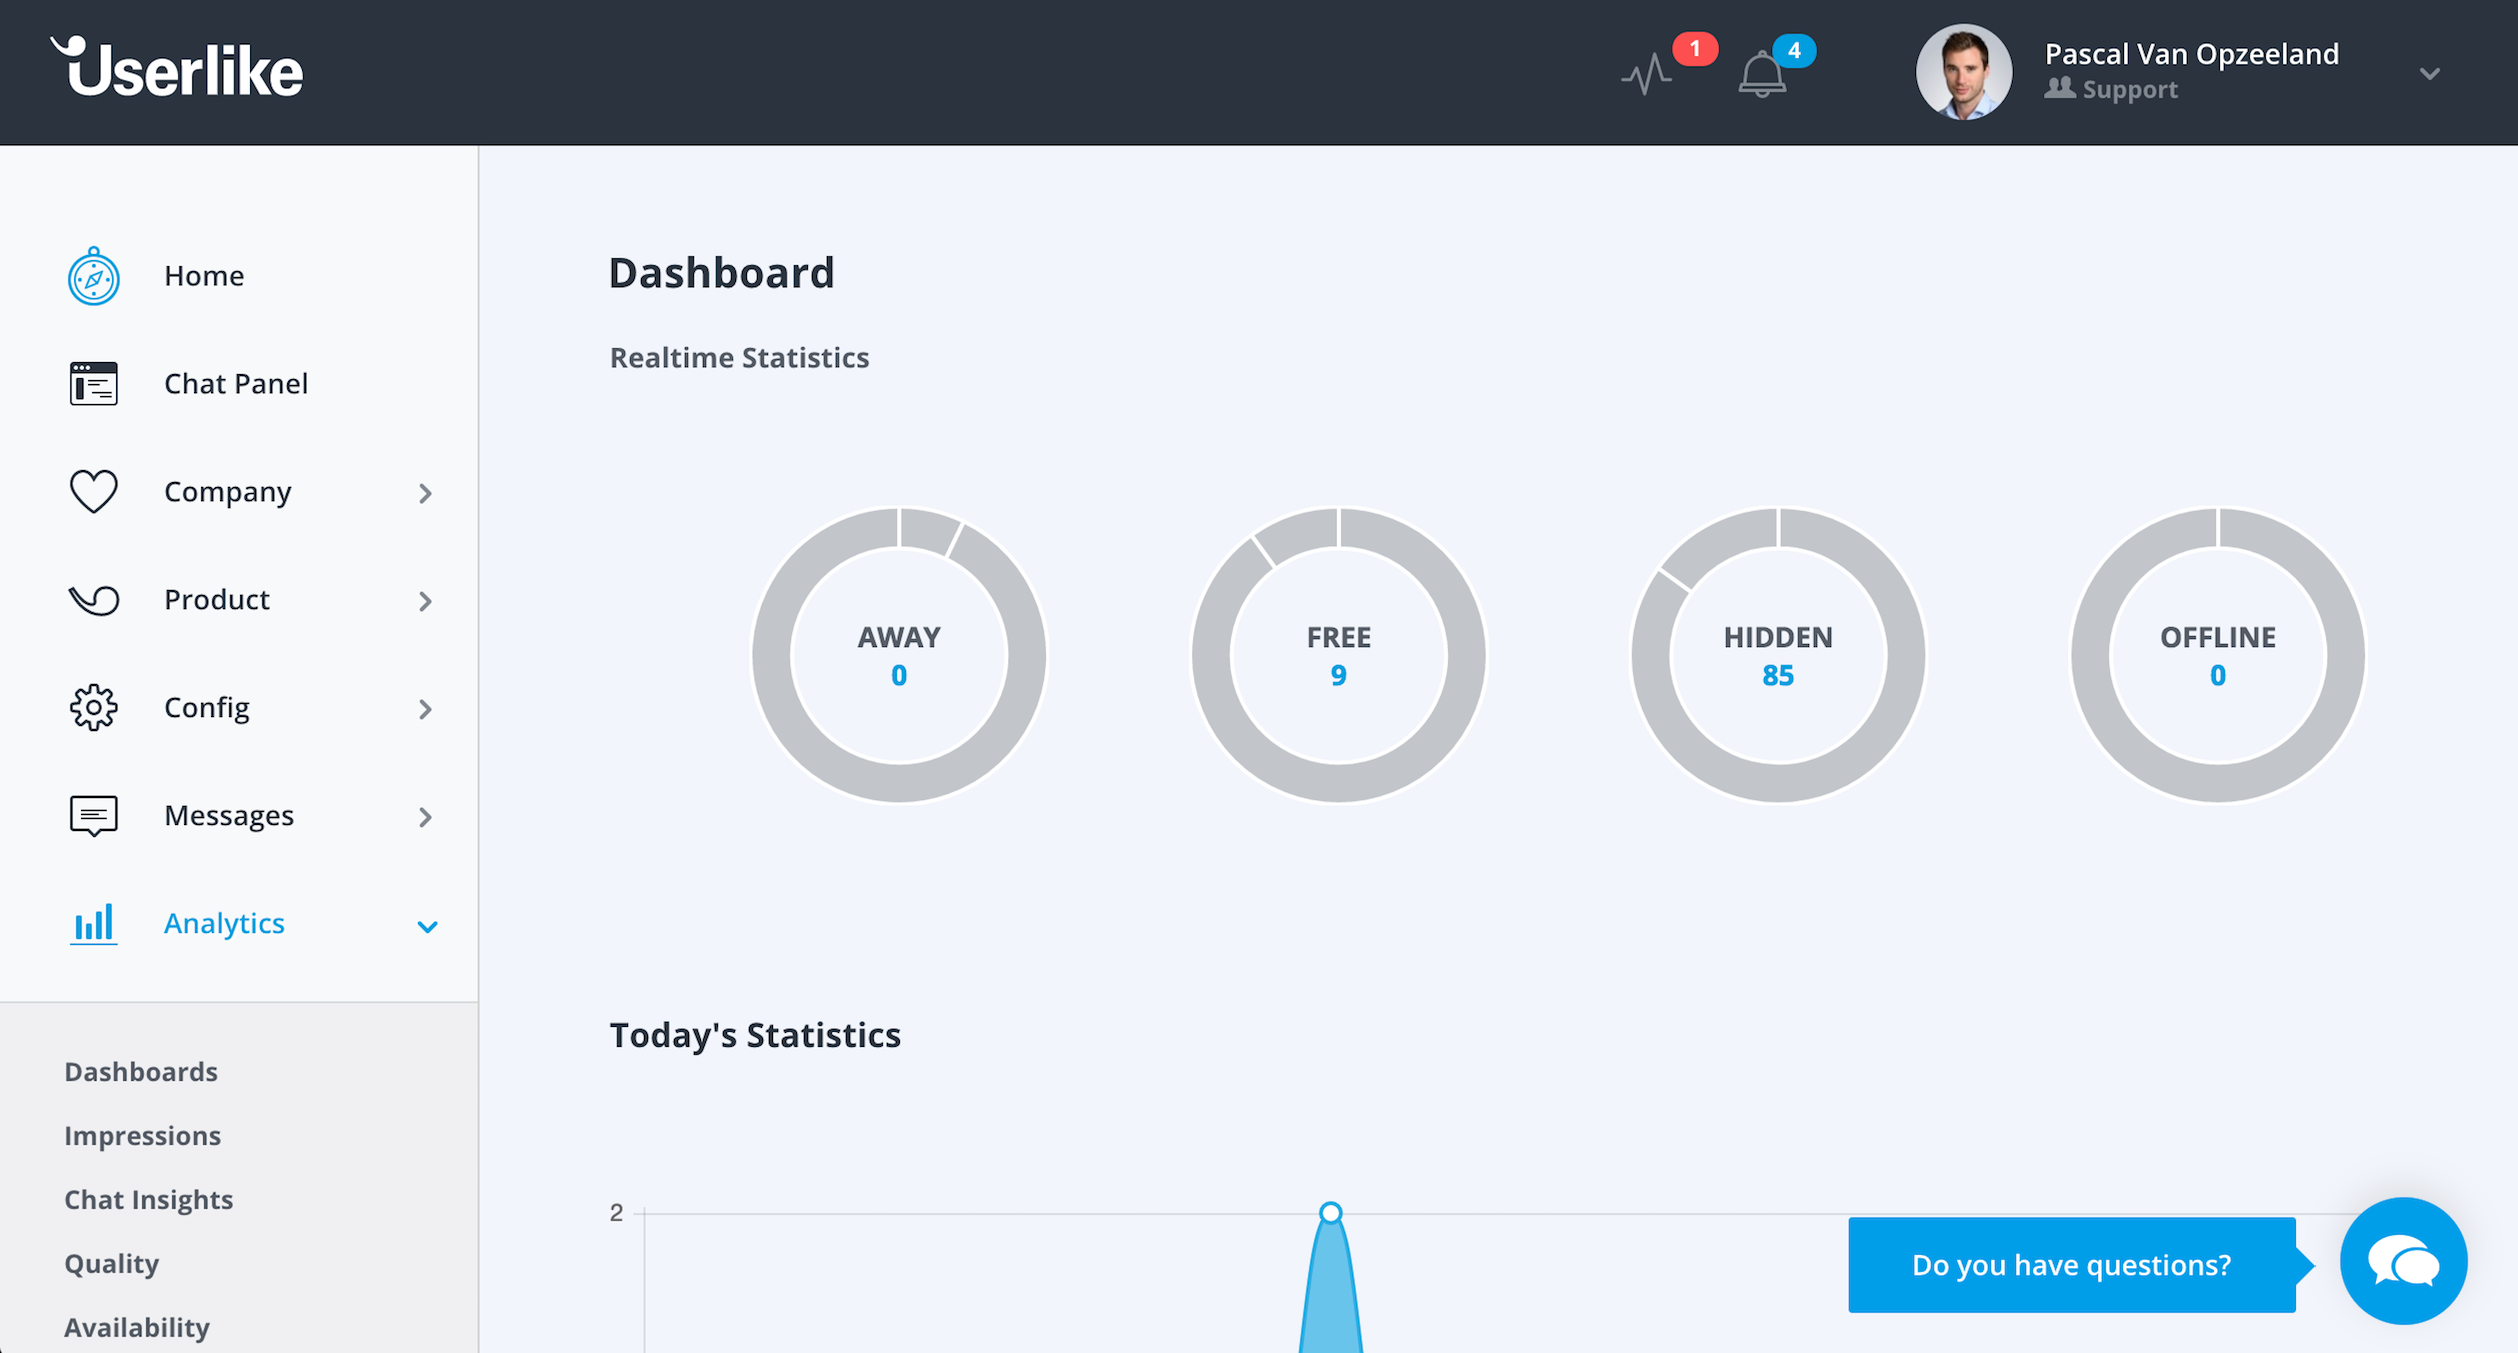 Allows teams to view key statistics about impression, chat insights, usr quality, and availability